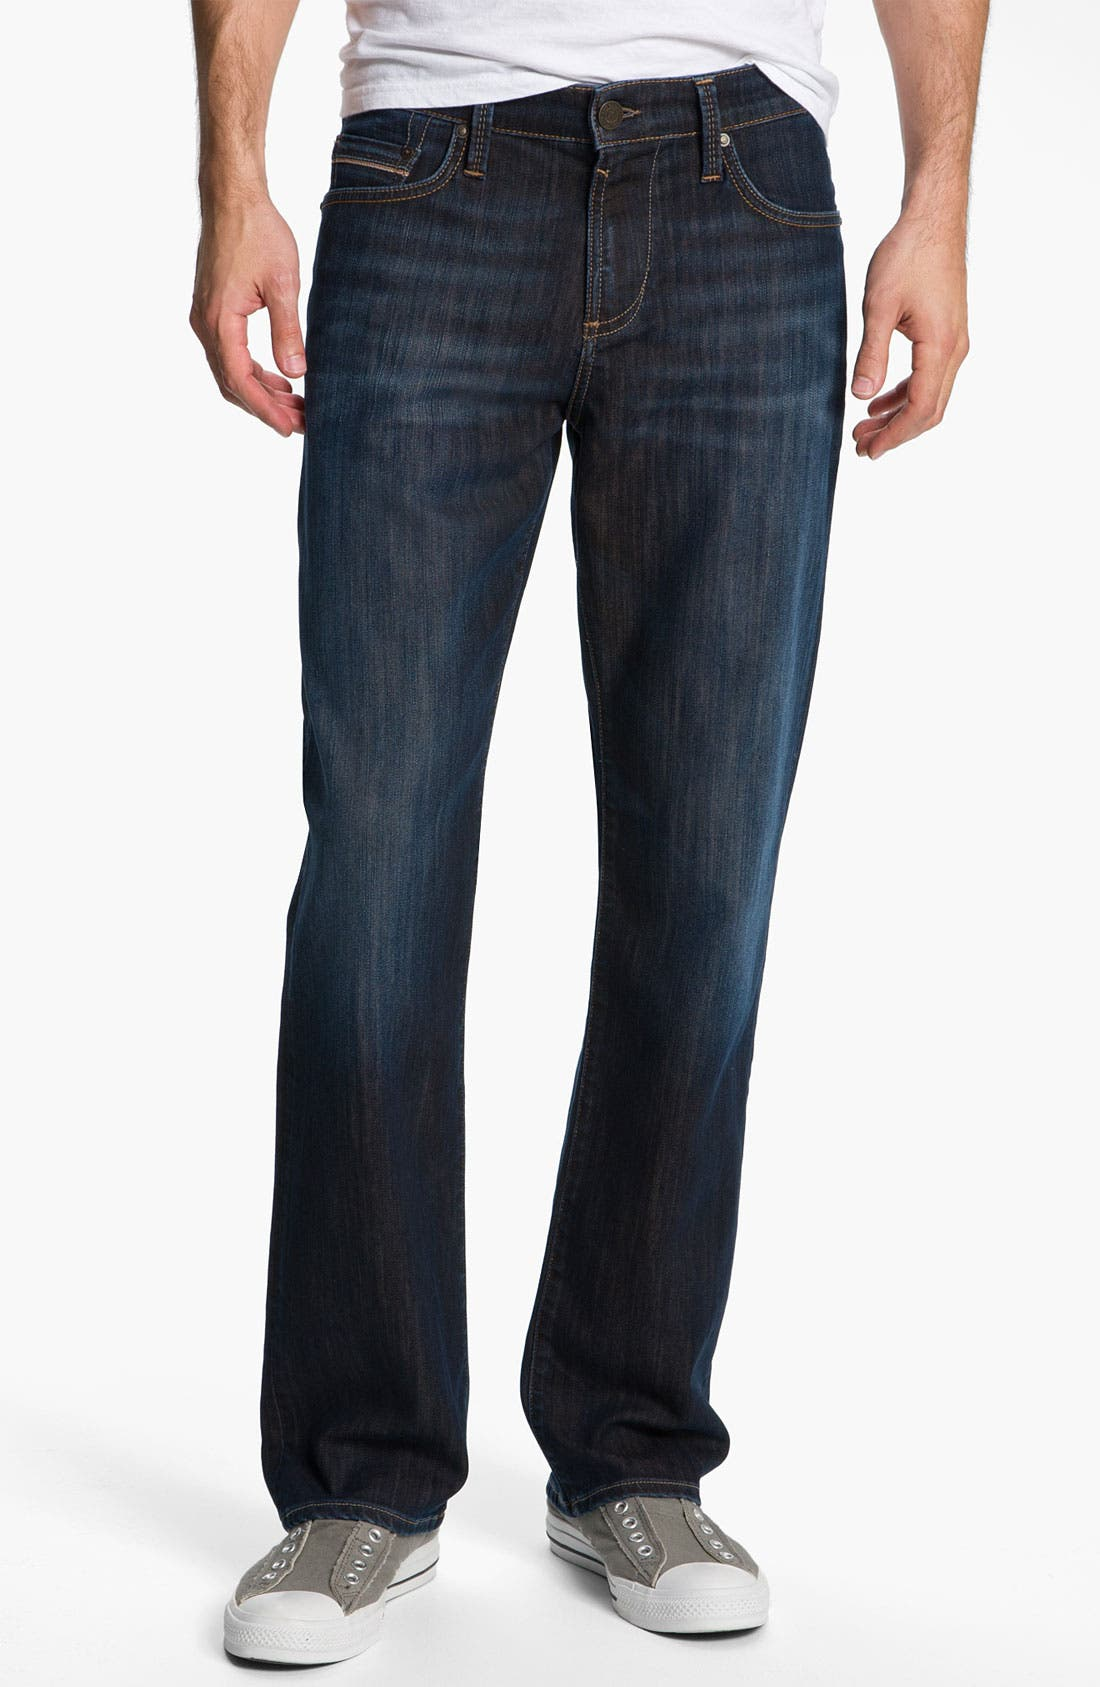 Main Image - Mavi Jeans 'Matt' Relaxed Fit Jeans (Dark Kensington)